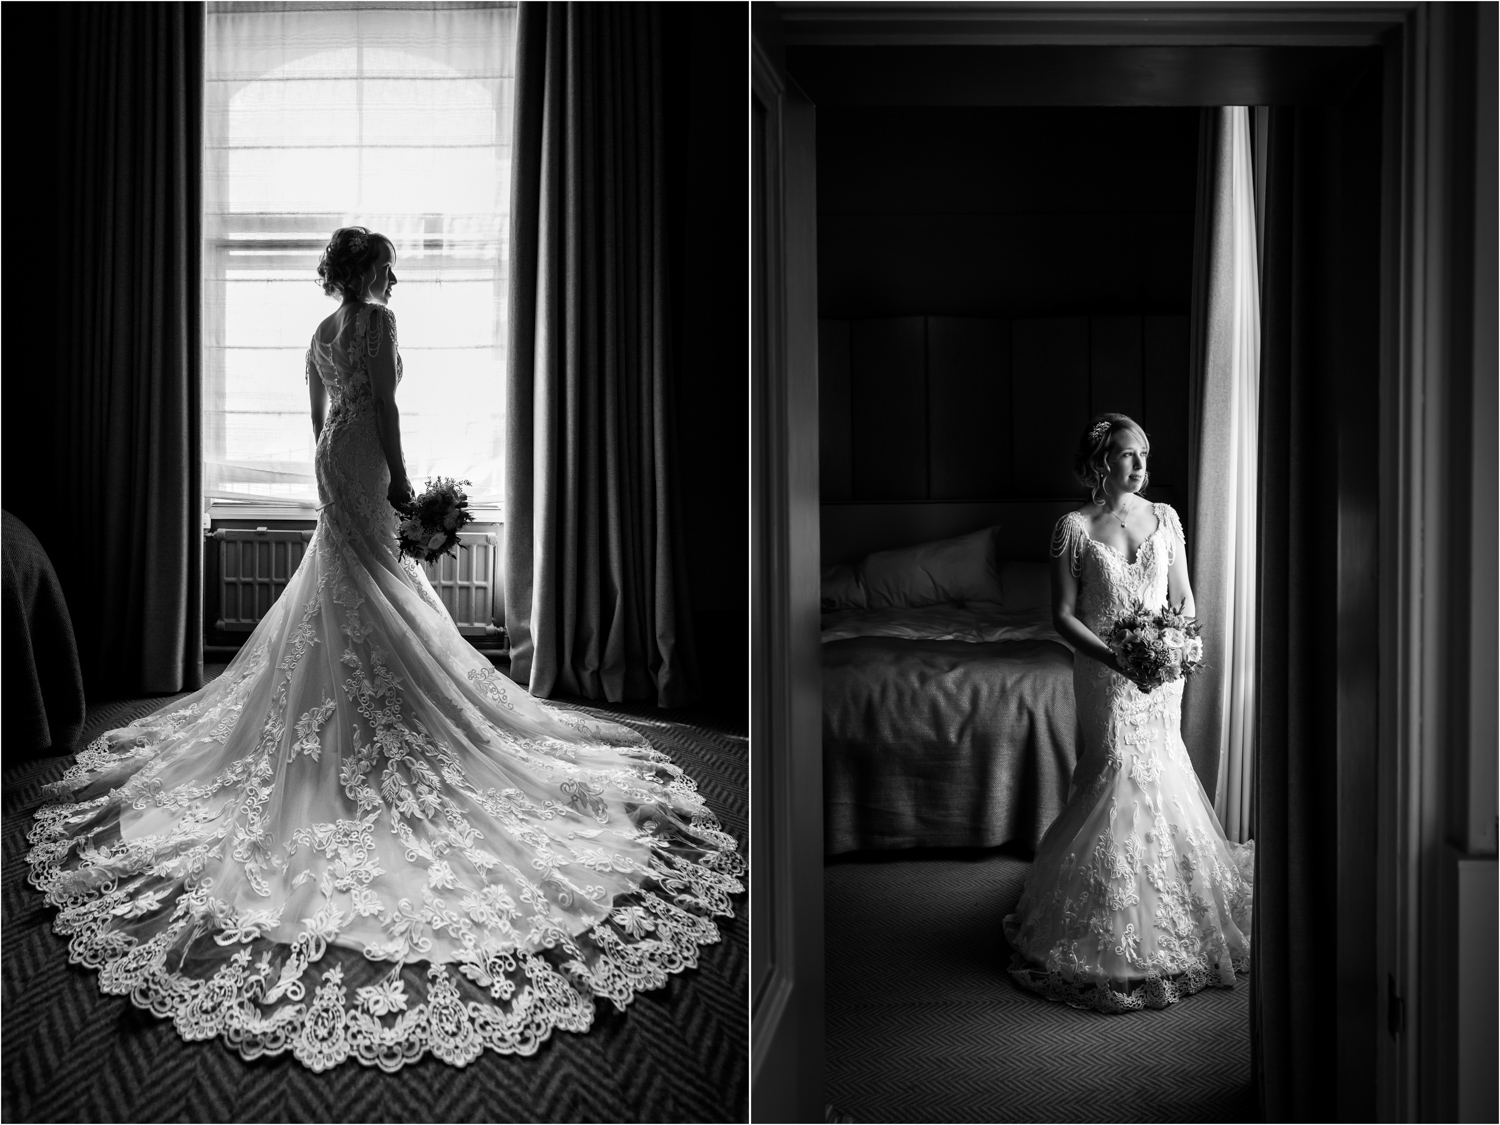 The Principal Wedding Photography - Bride ready for her big day